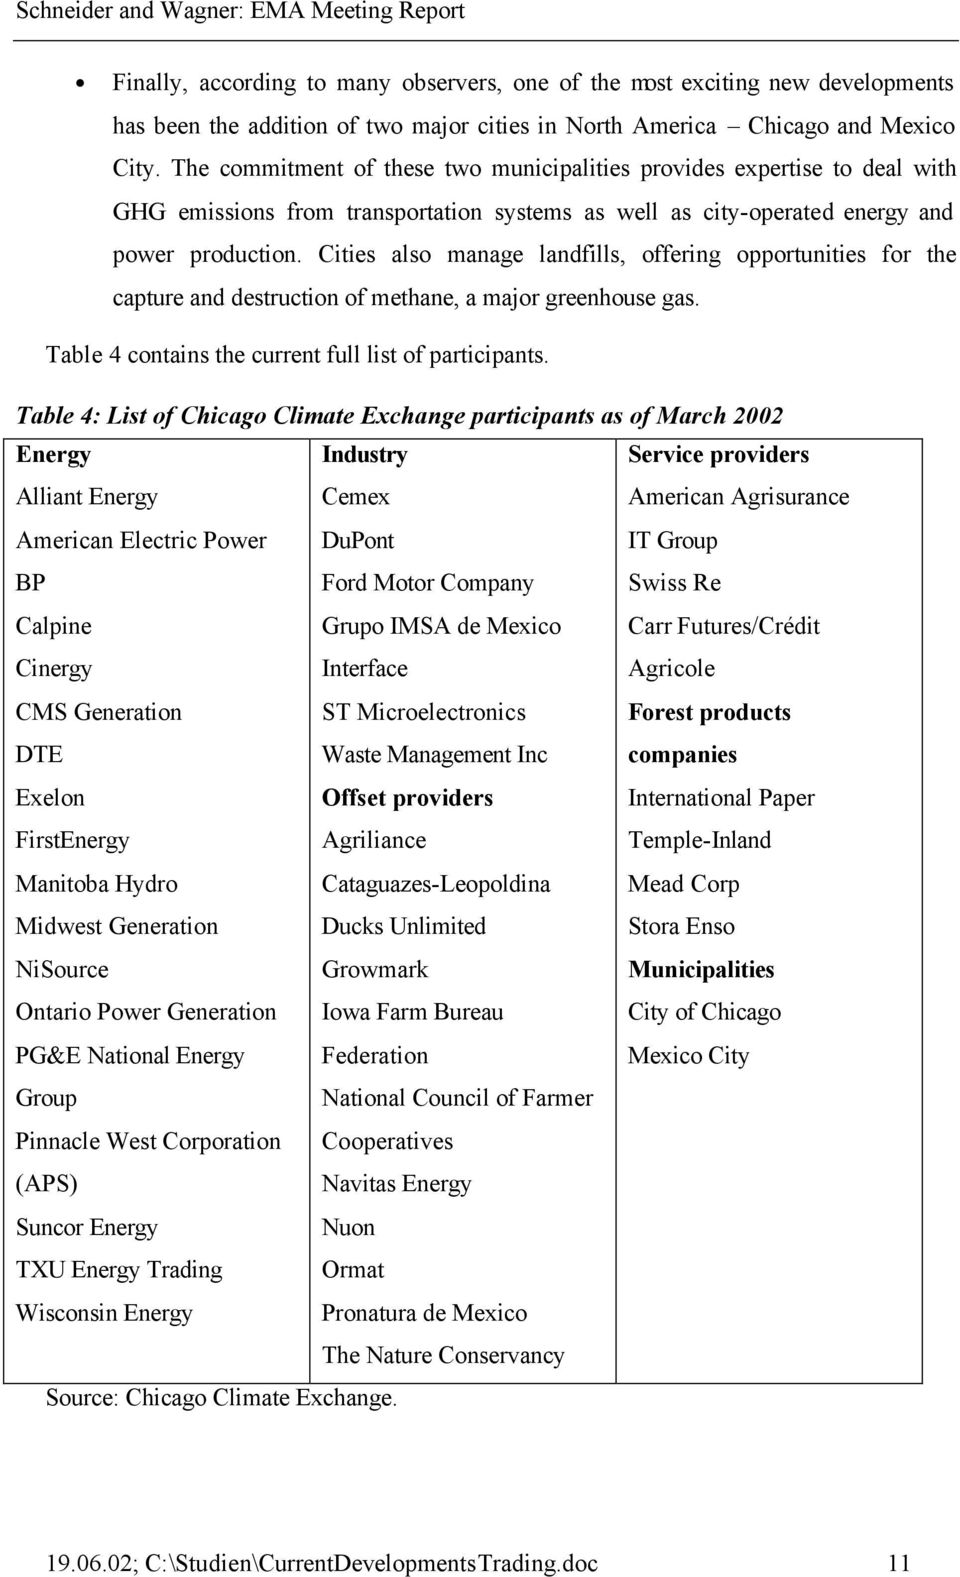 Current Issues In Emission Trading And Global Climate